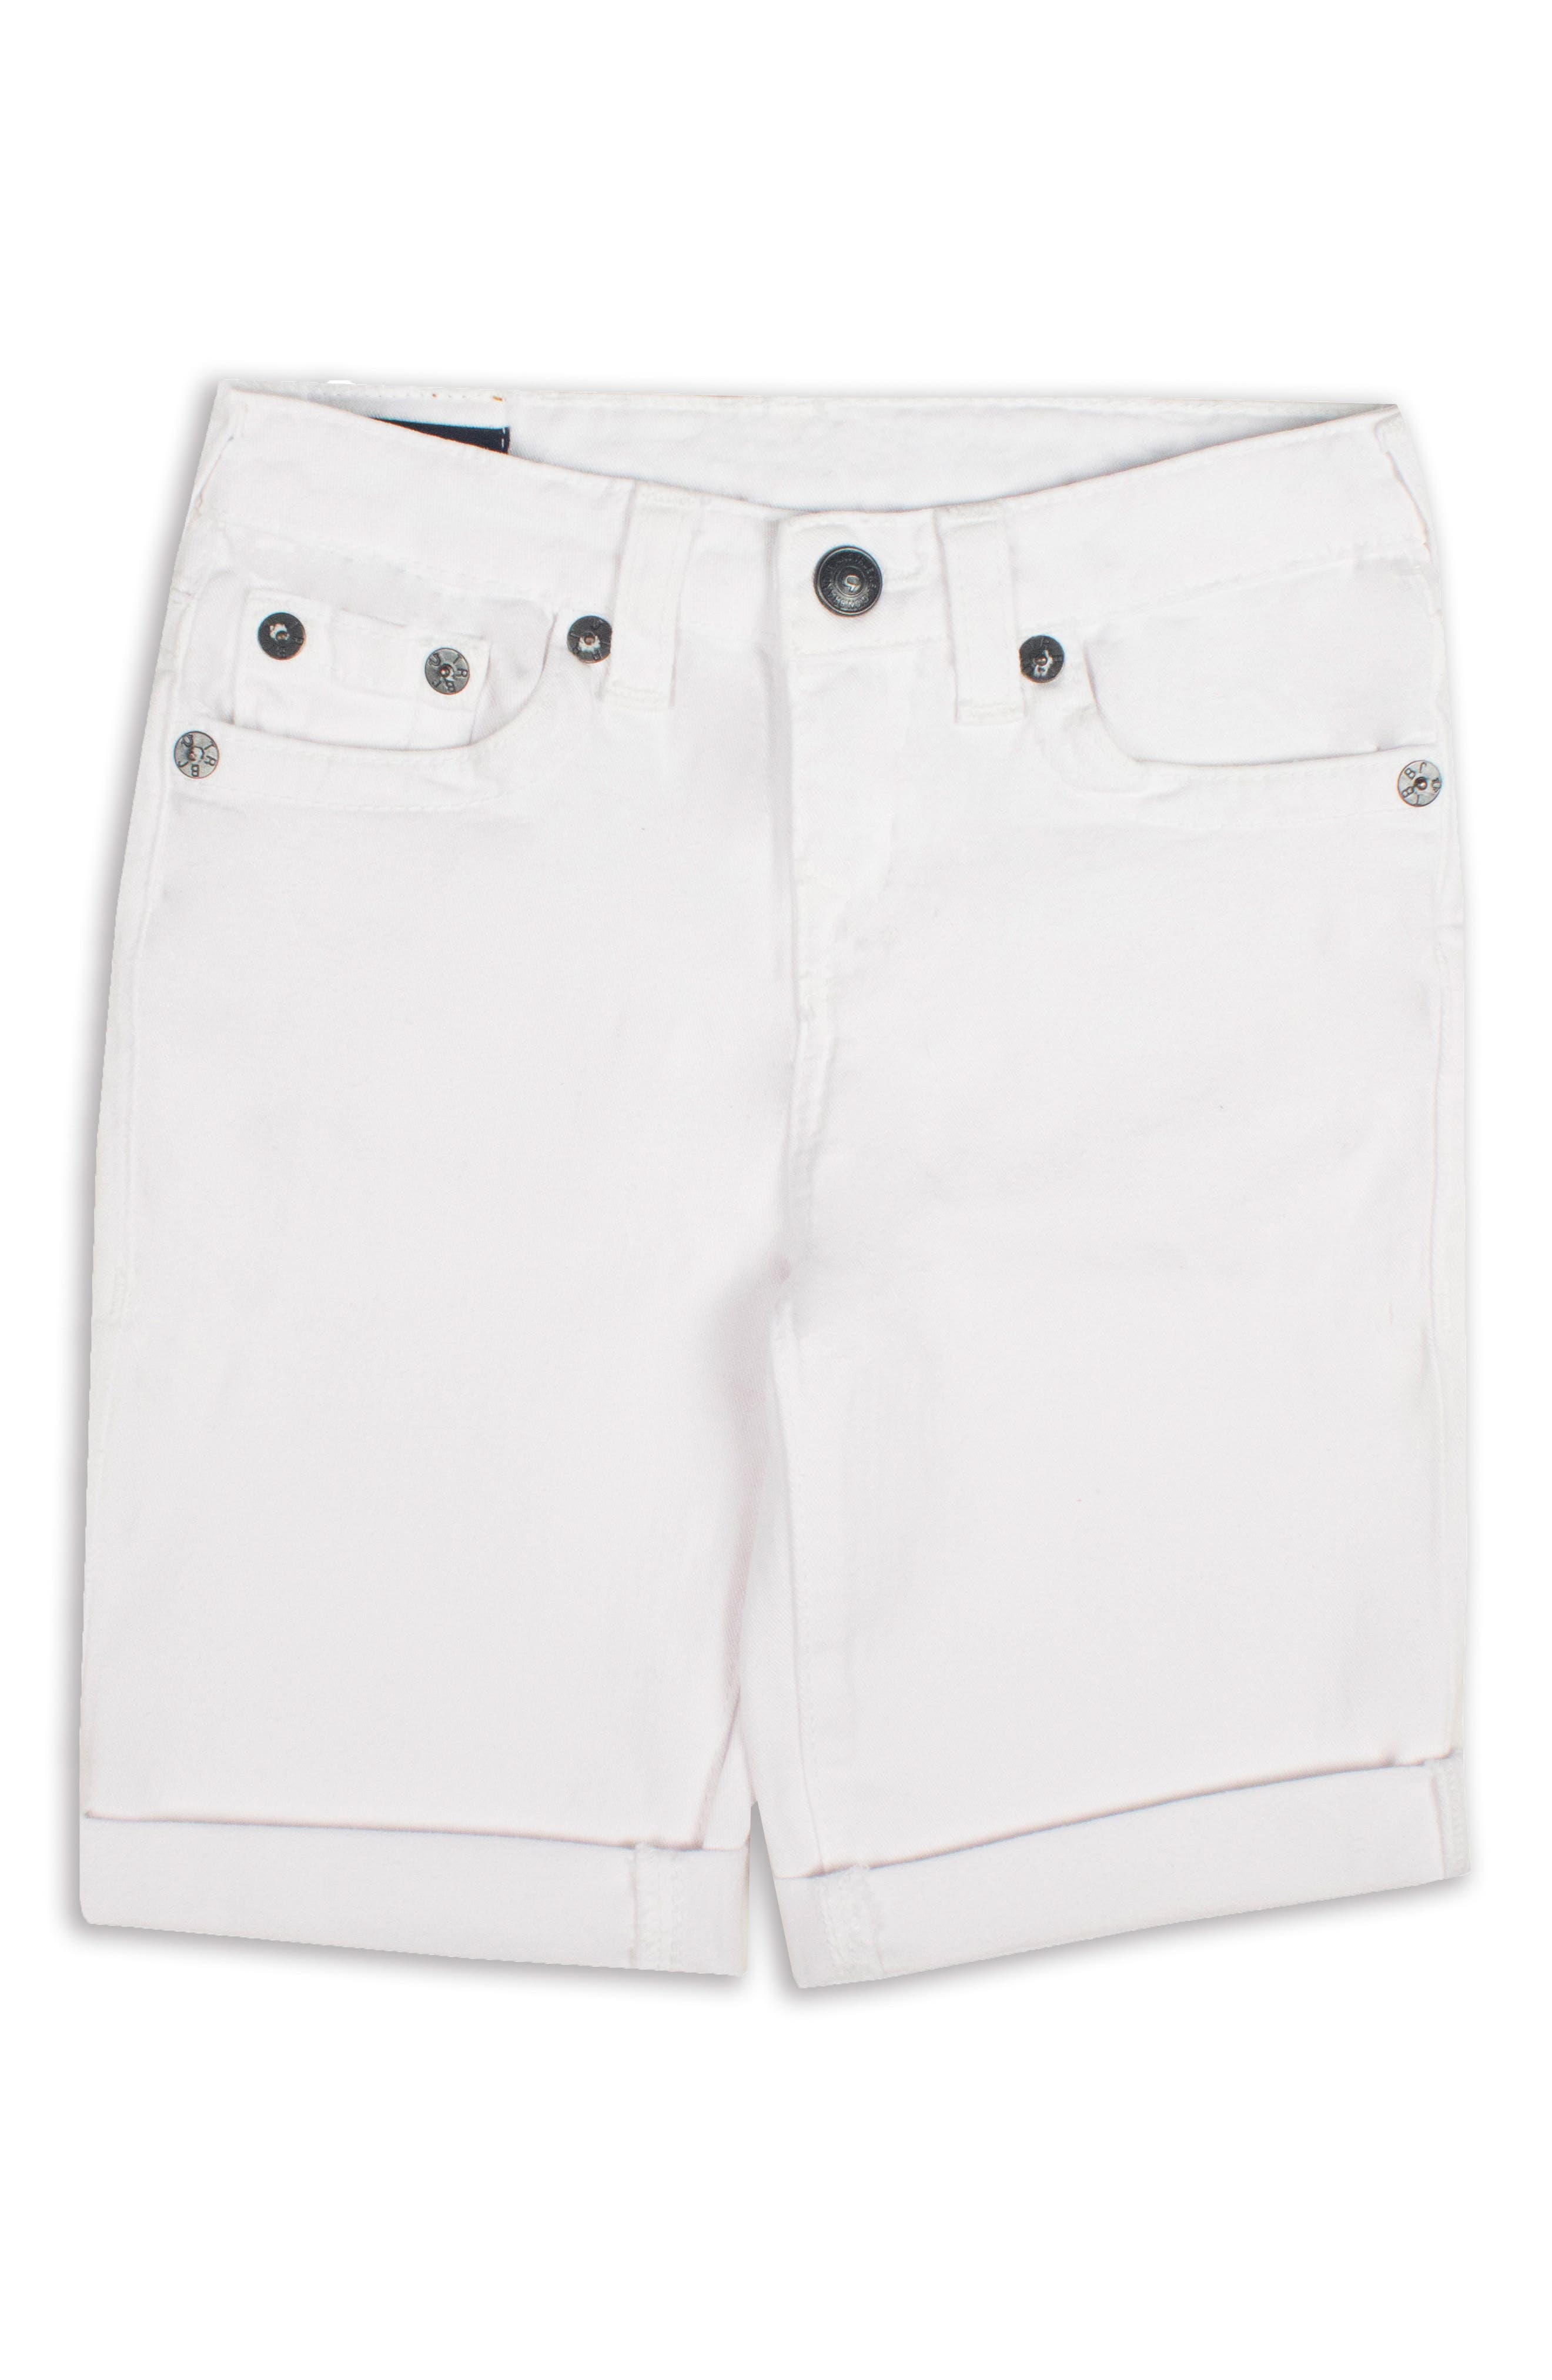 True Religion Brand Jeans Geno Denim Shorts (Big Boys)